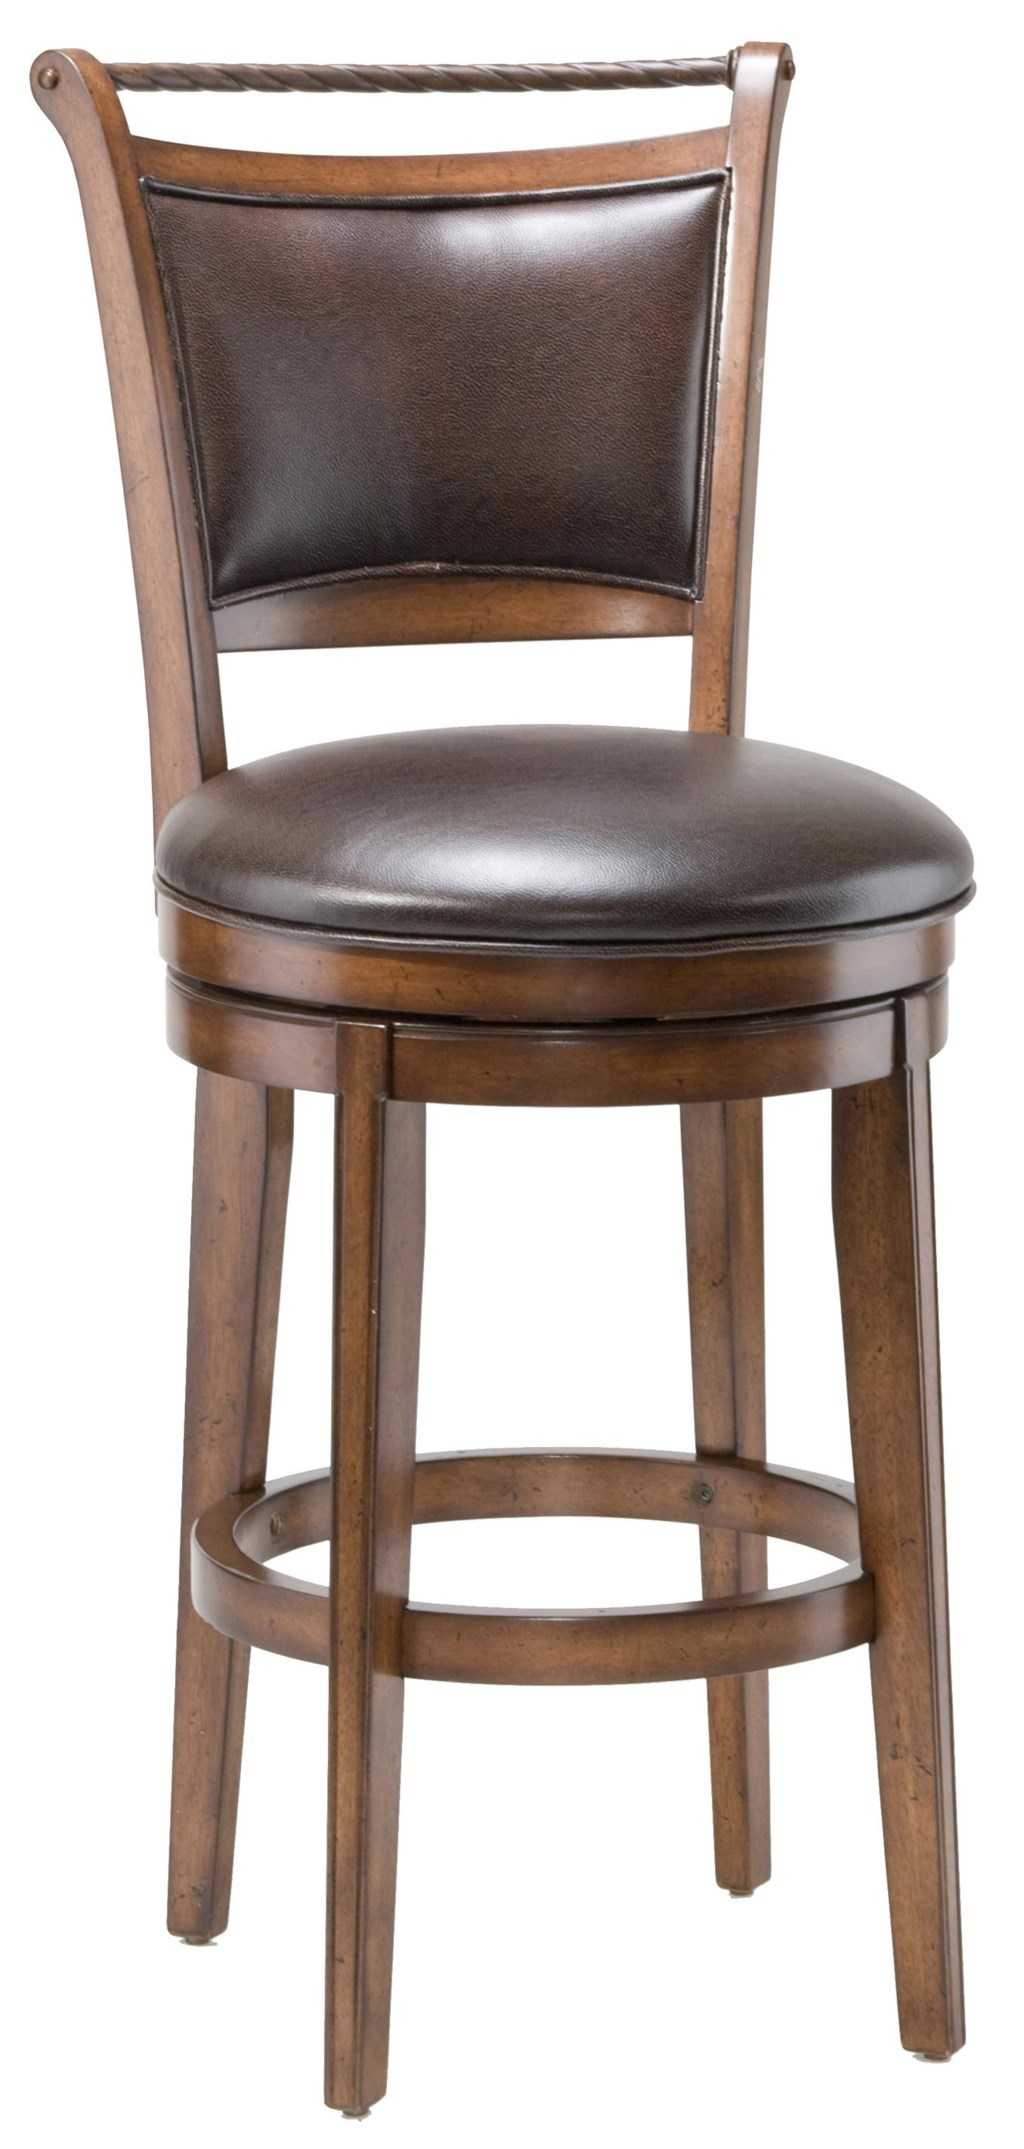 Hillsdale Wood Stools 26 Counter Height Calais Swivel Stool